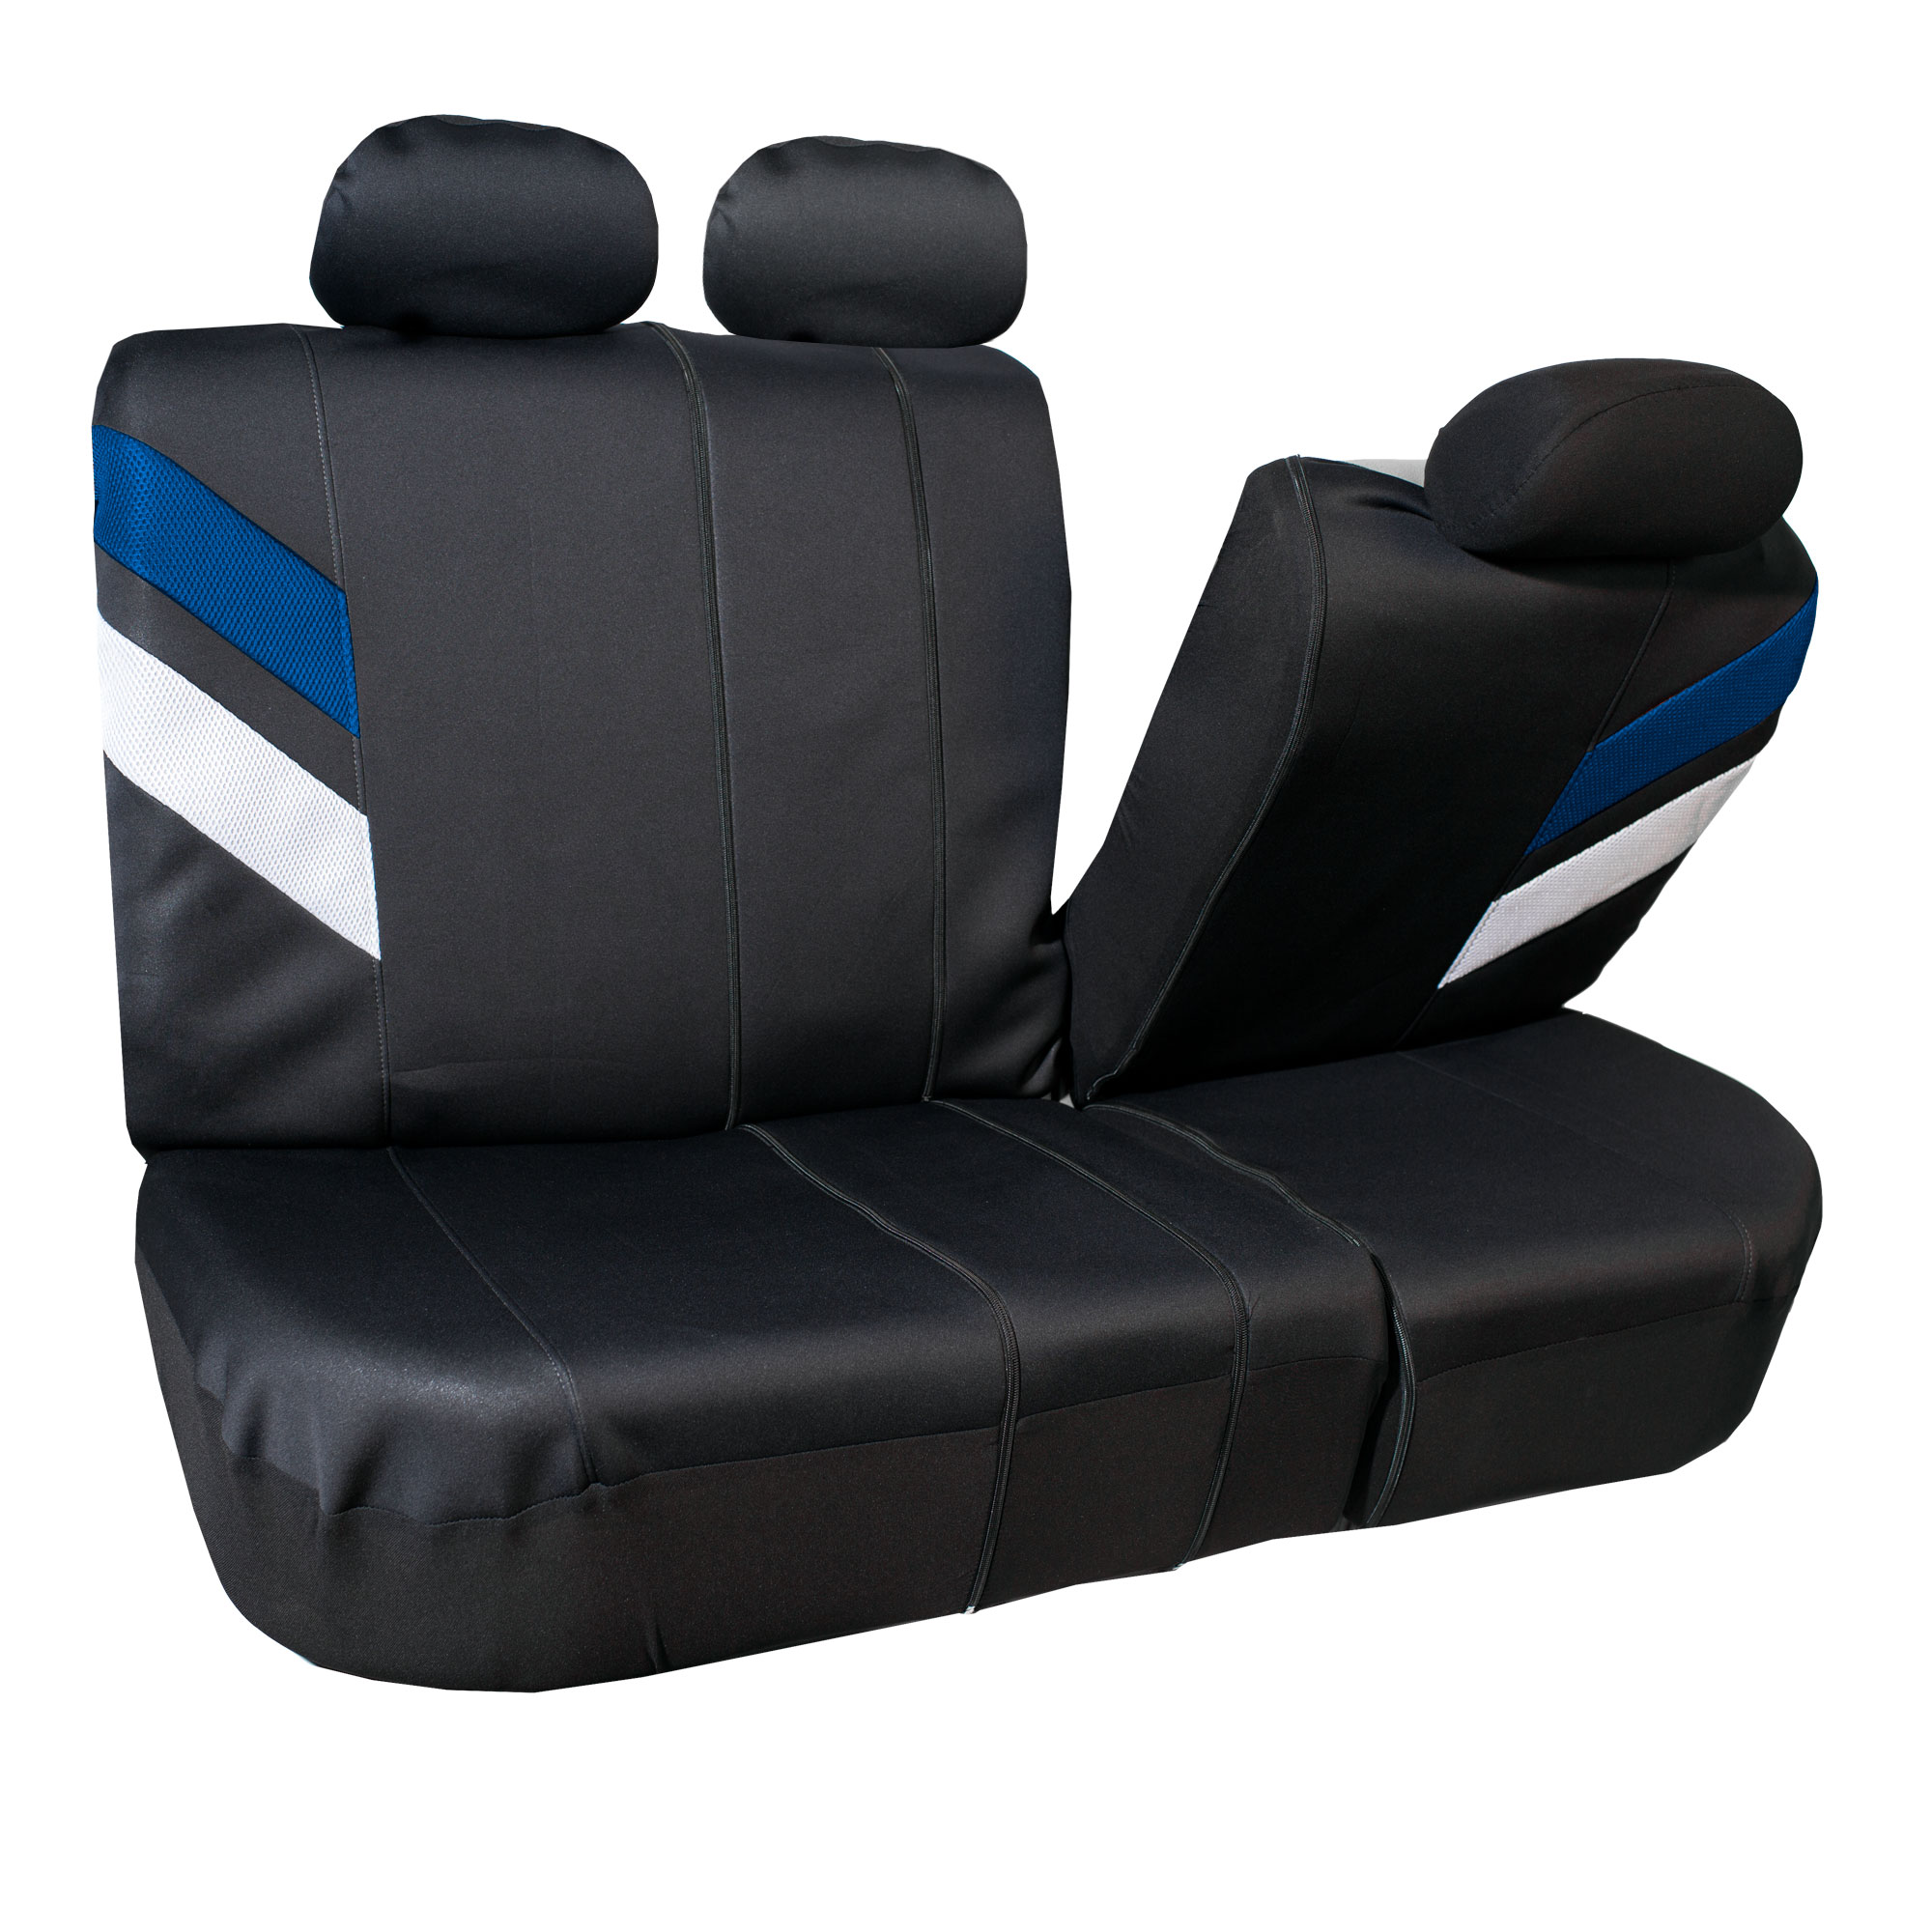 Neoprene Car Seat Covers For Auto Car SUV Van Complete